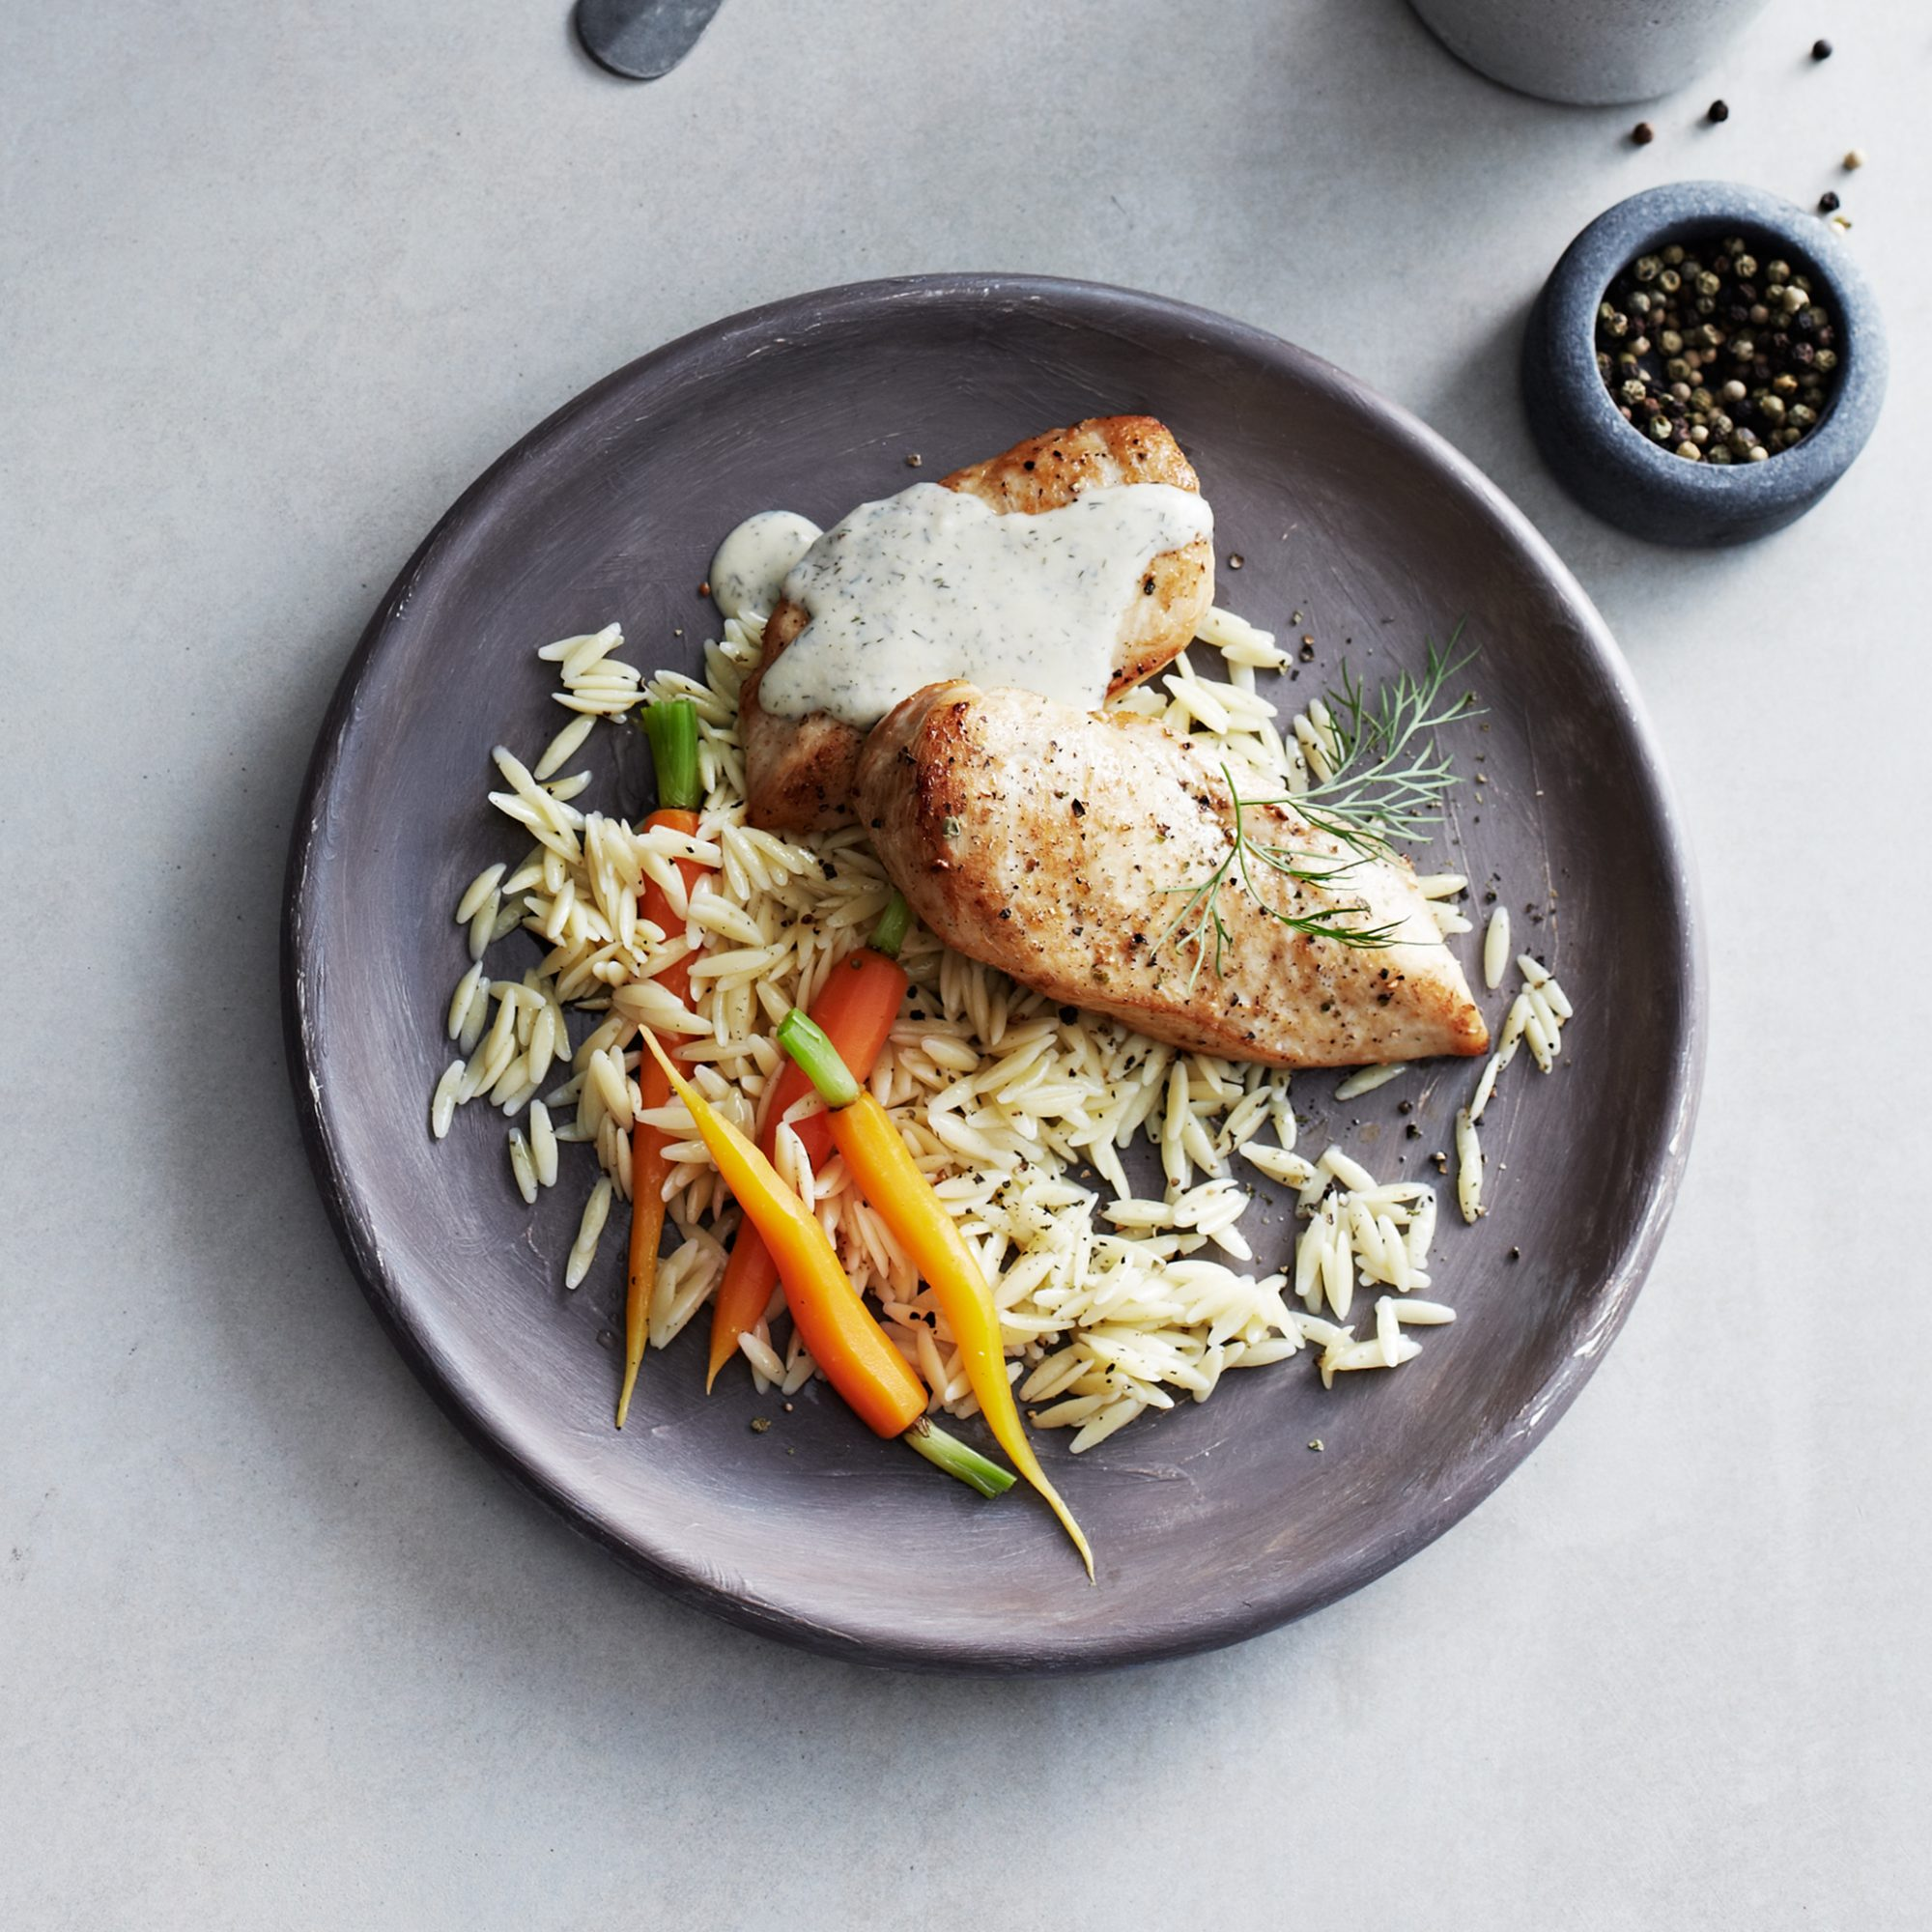 Chicken Breasts with Orzo, Carrots, Dill, and Avgolemono Sauce